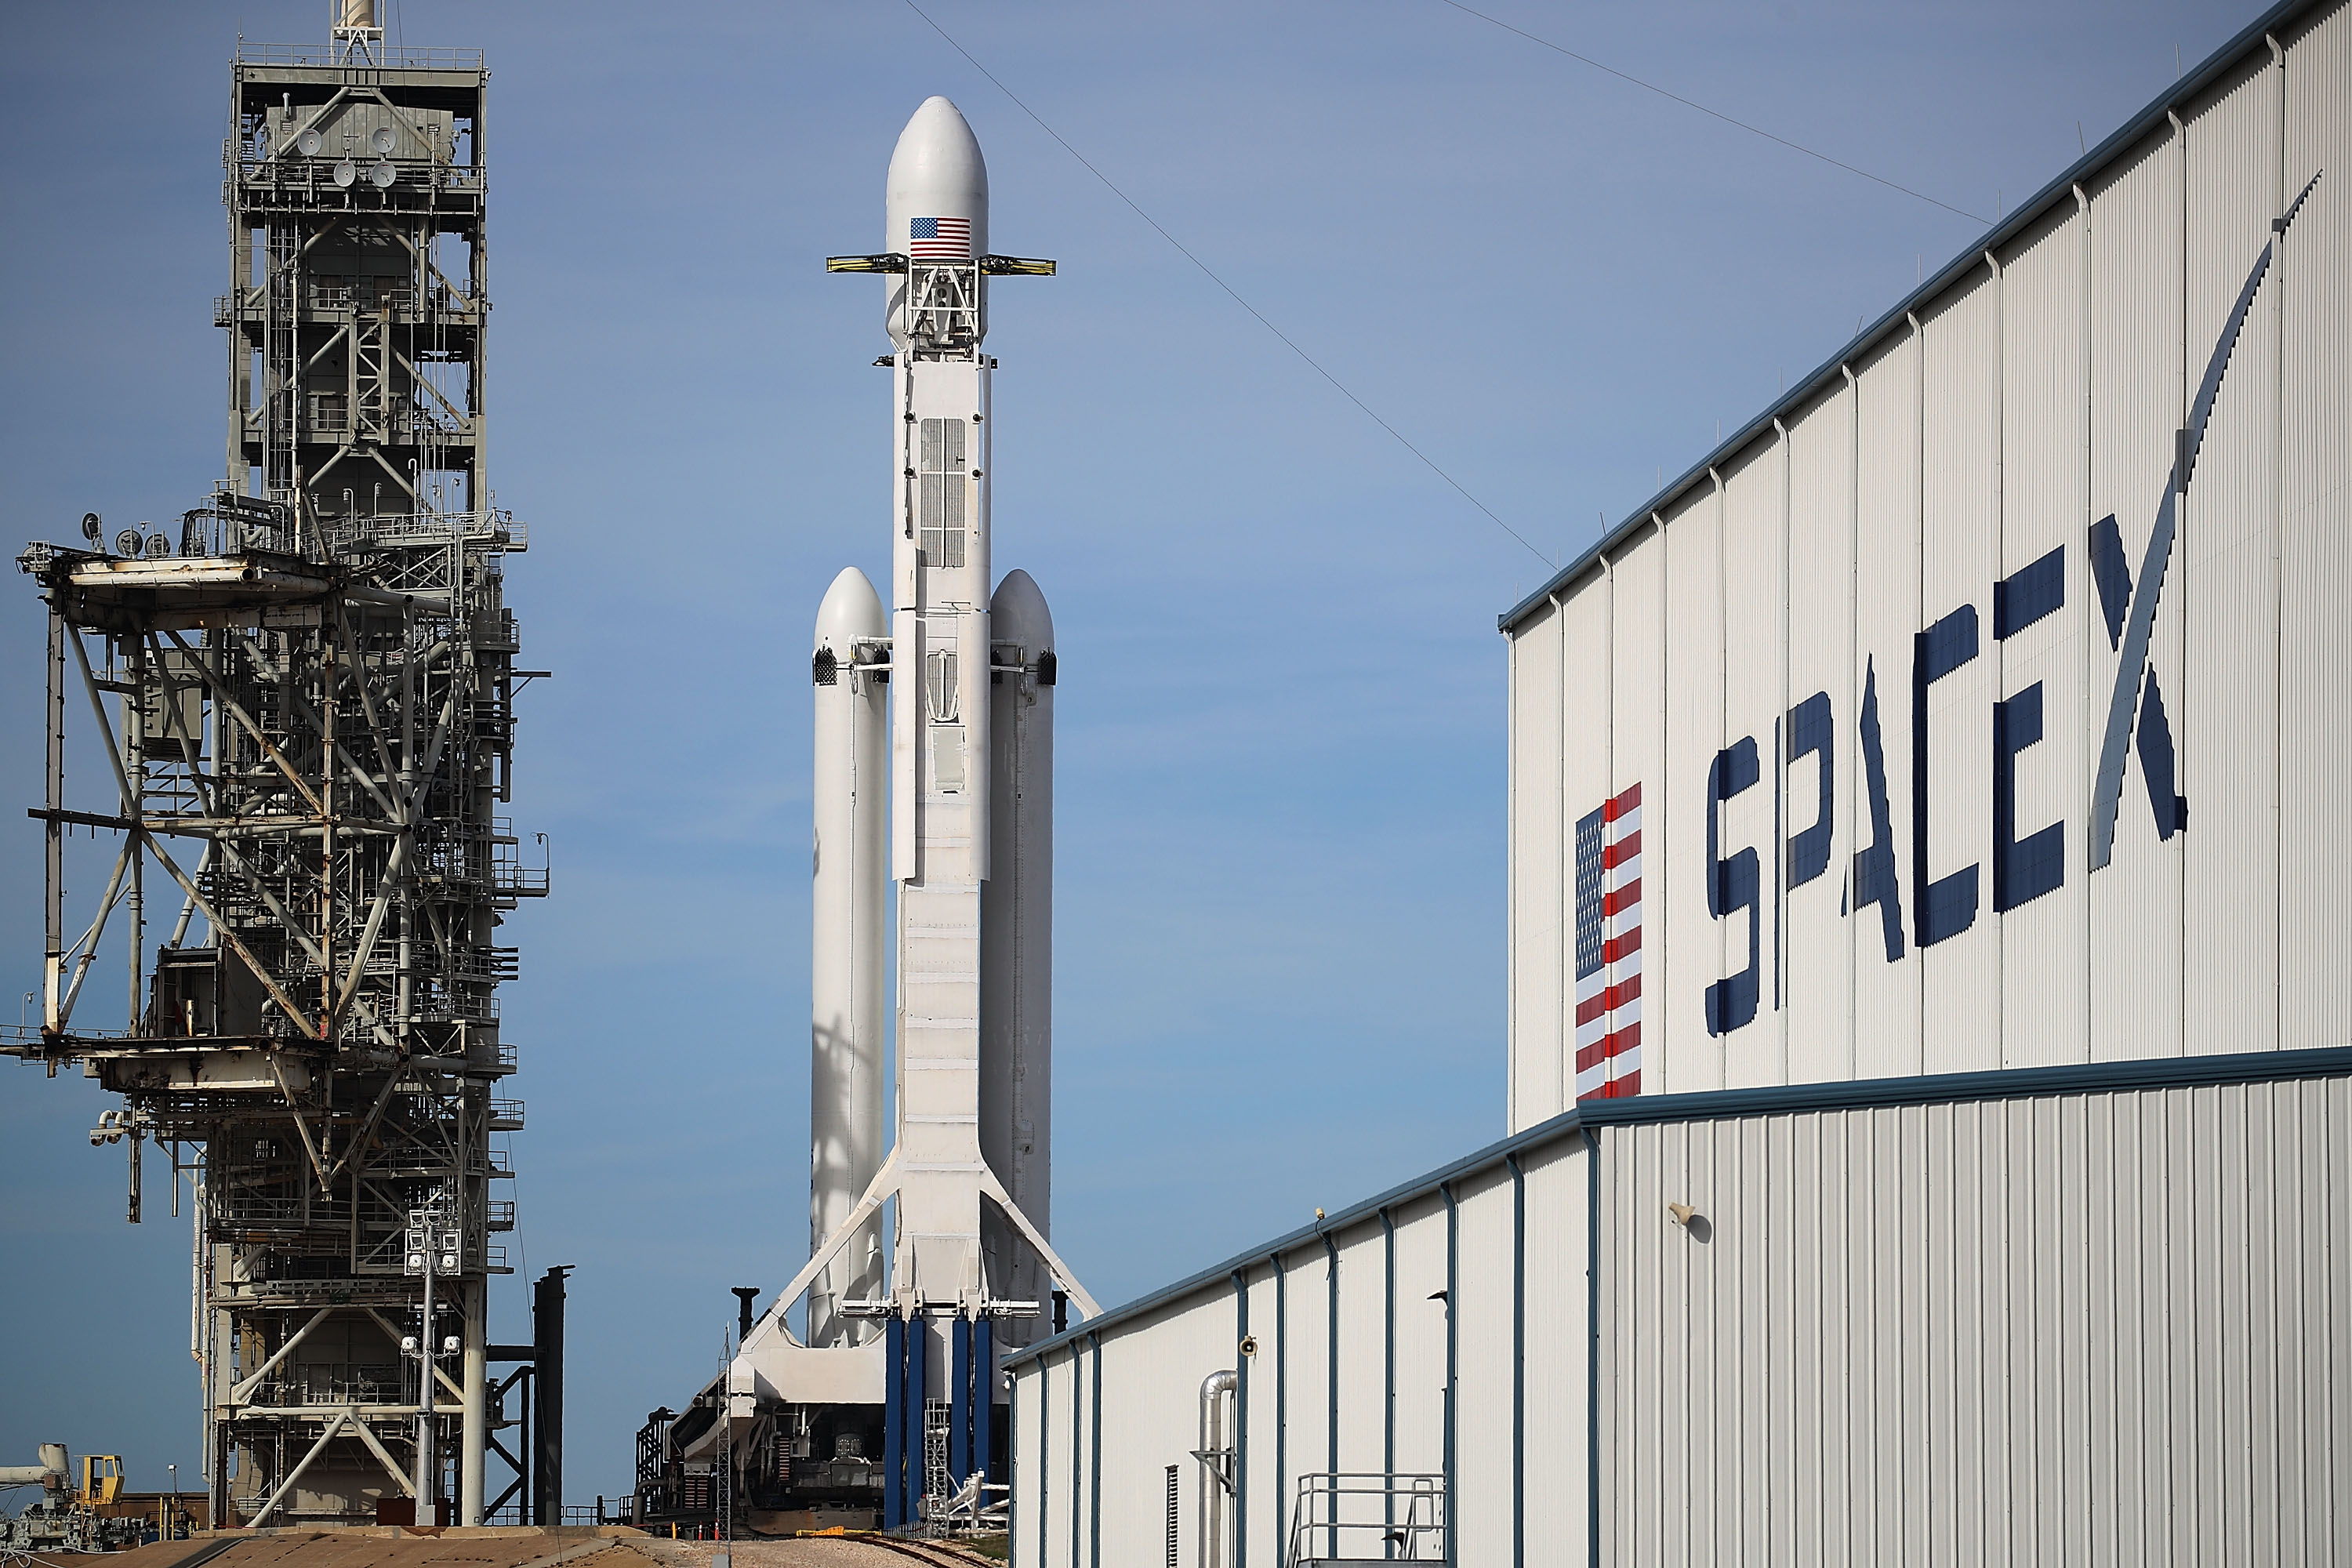 The SpaceX Falcon Heavy rocket sits on launch pad 39A at Kennedy Space Center as it is prepared for tomorrow's lift-off  on February 5, 2018 in Cape Canaveral, Florida.